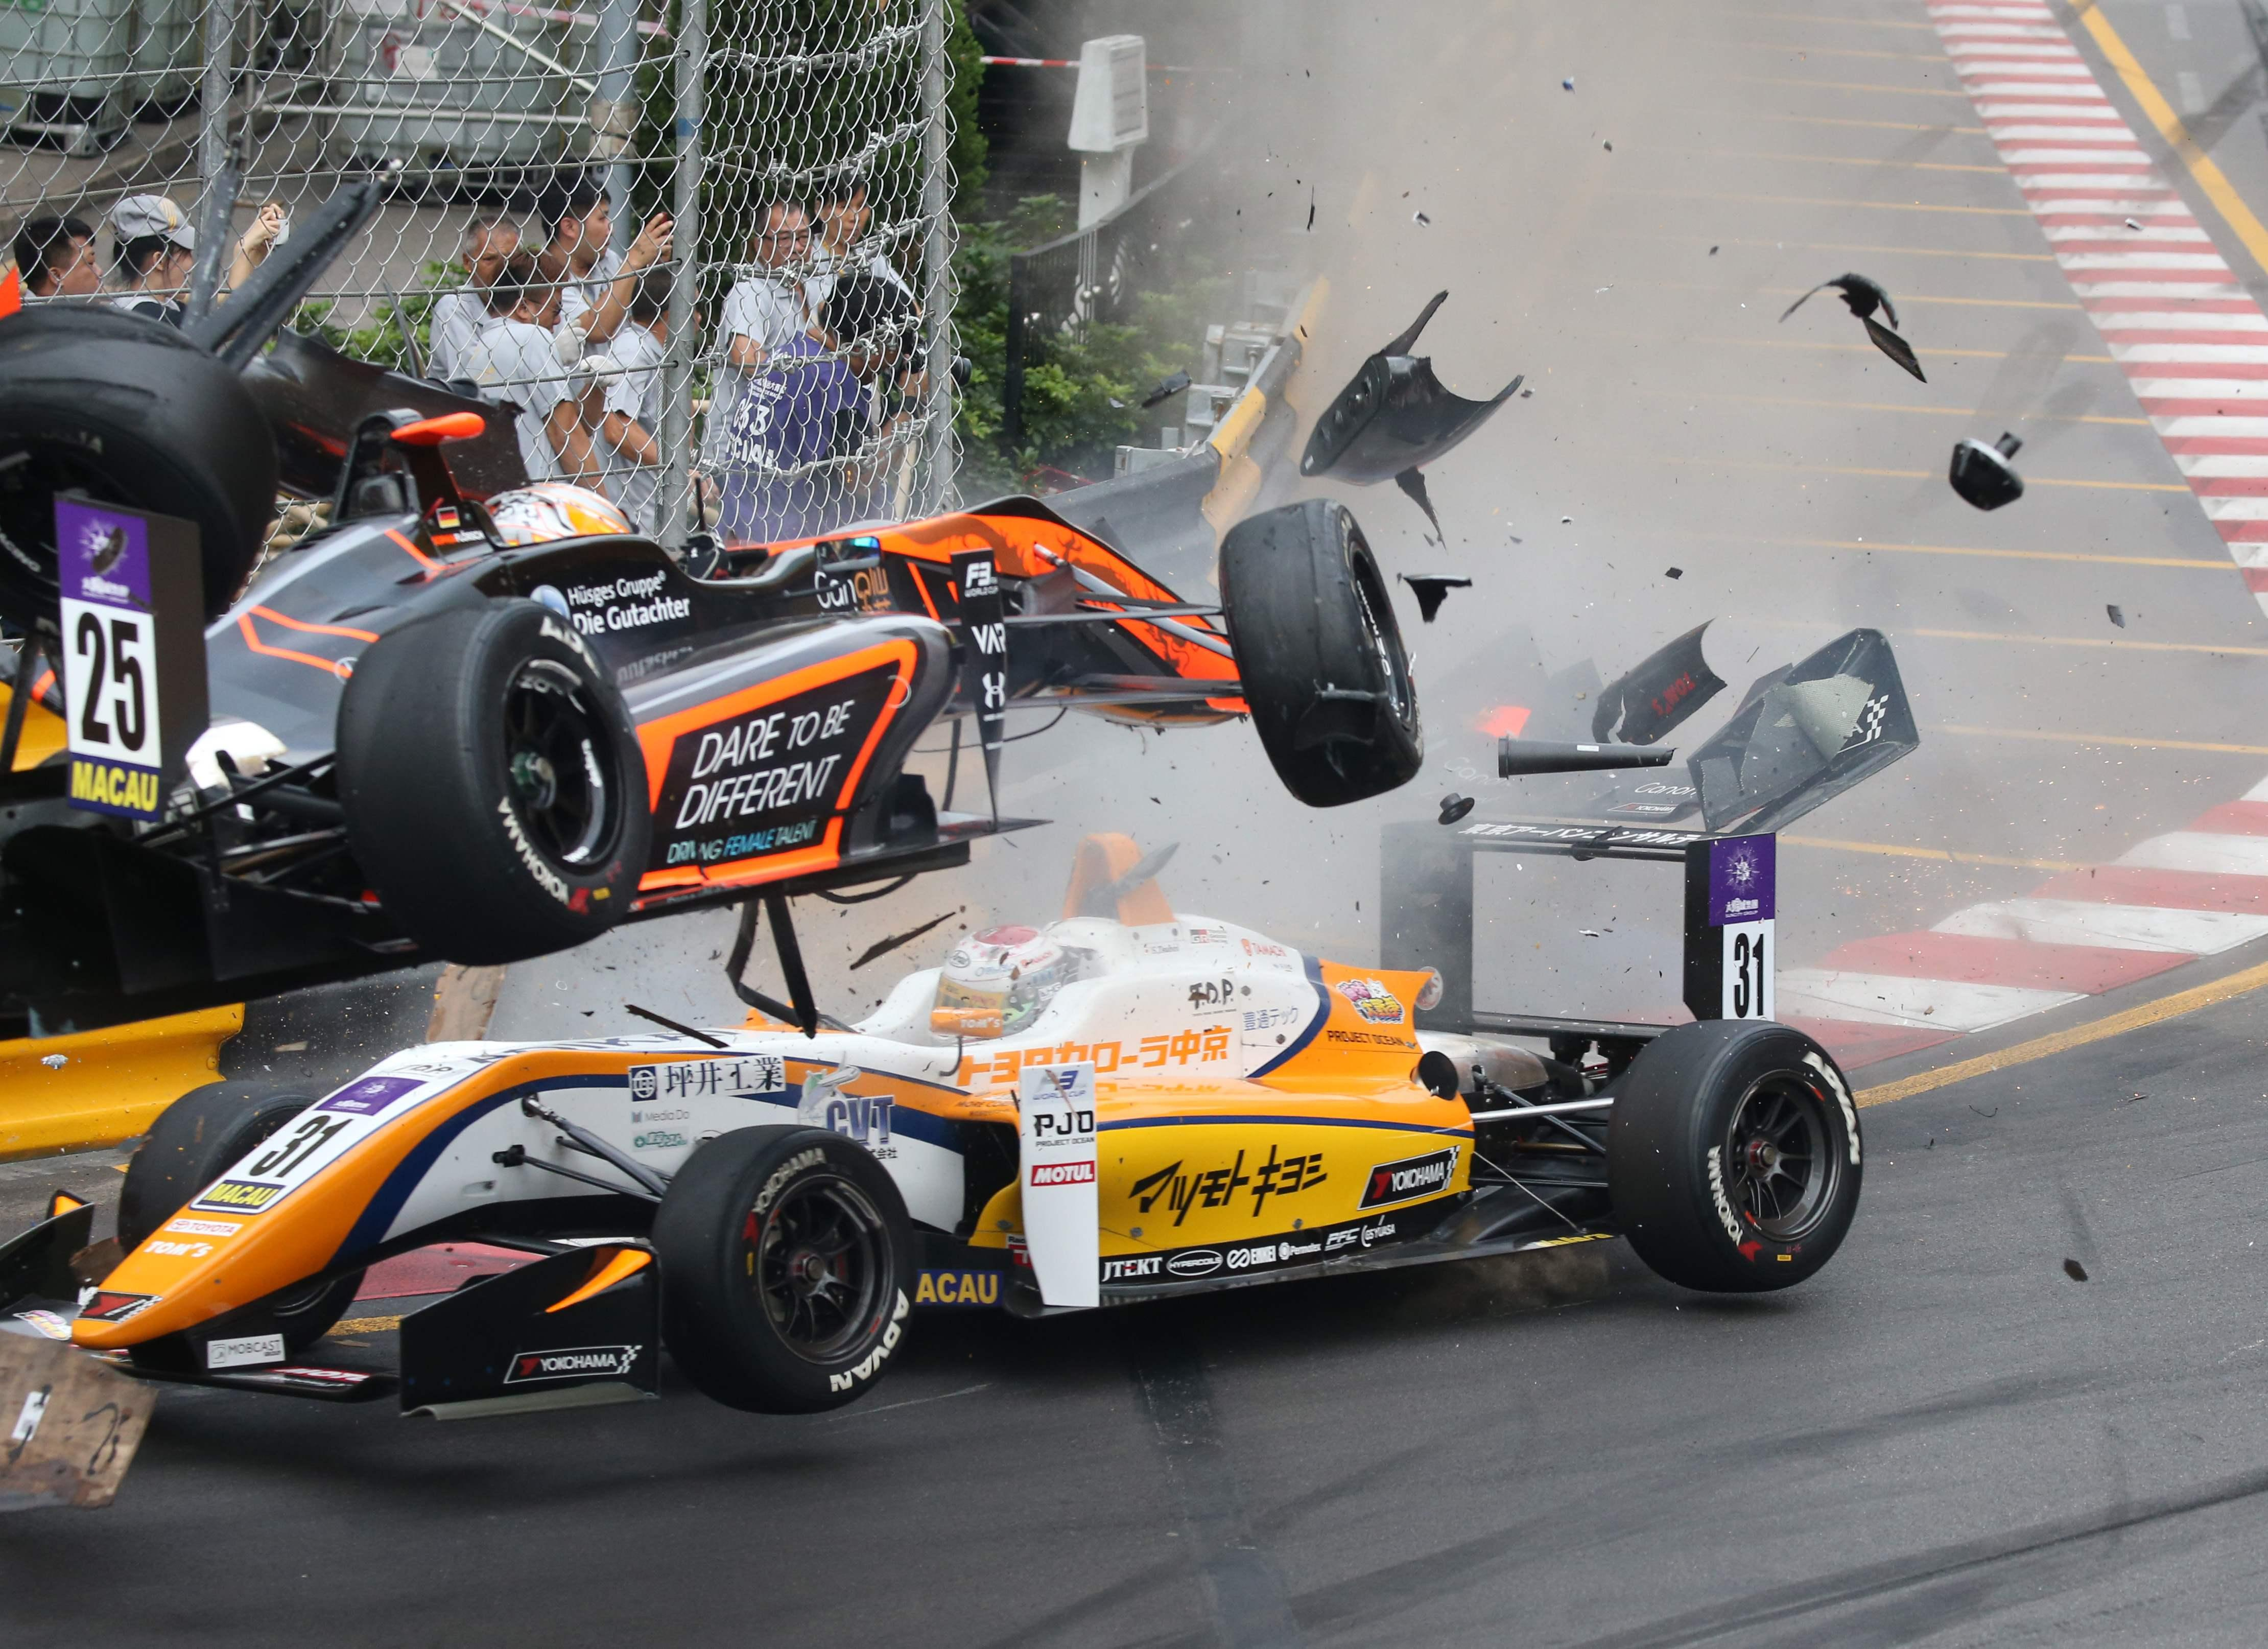 Sophia Floersch crashed at 170mph in heart-stopping scenes over a week ago